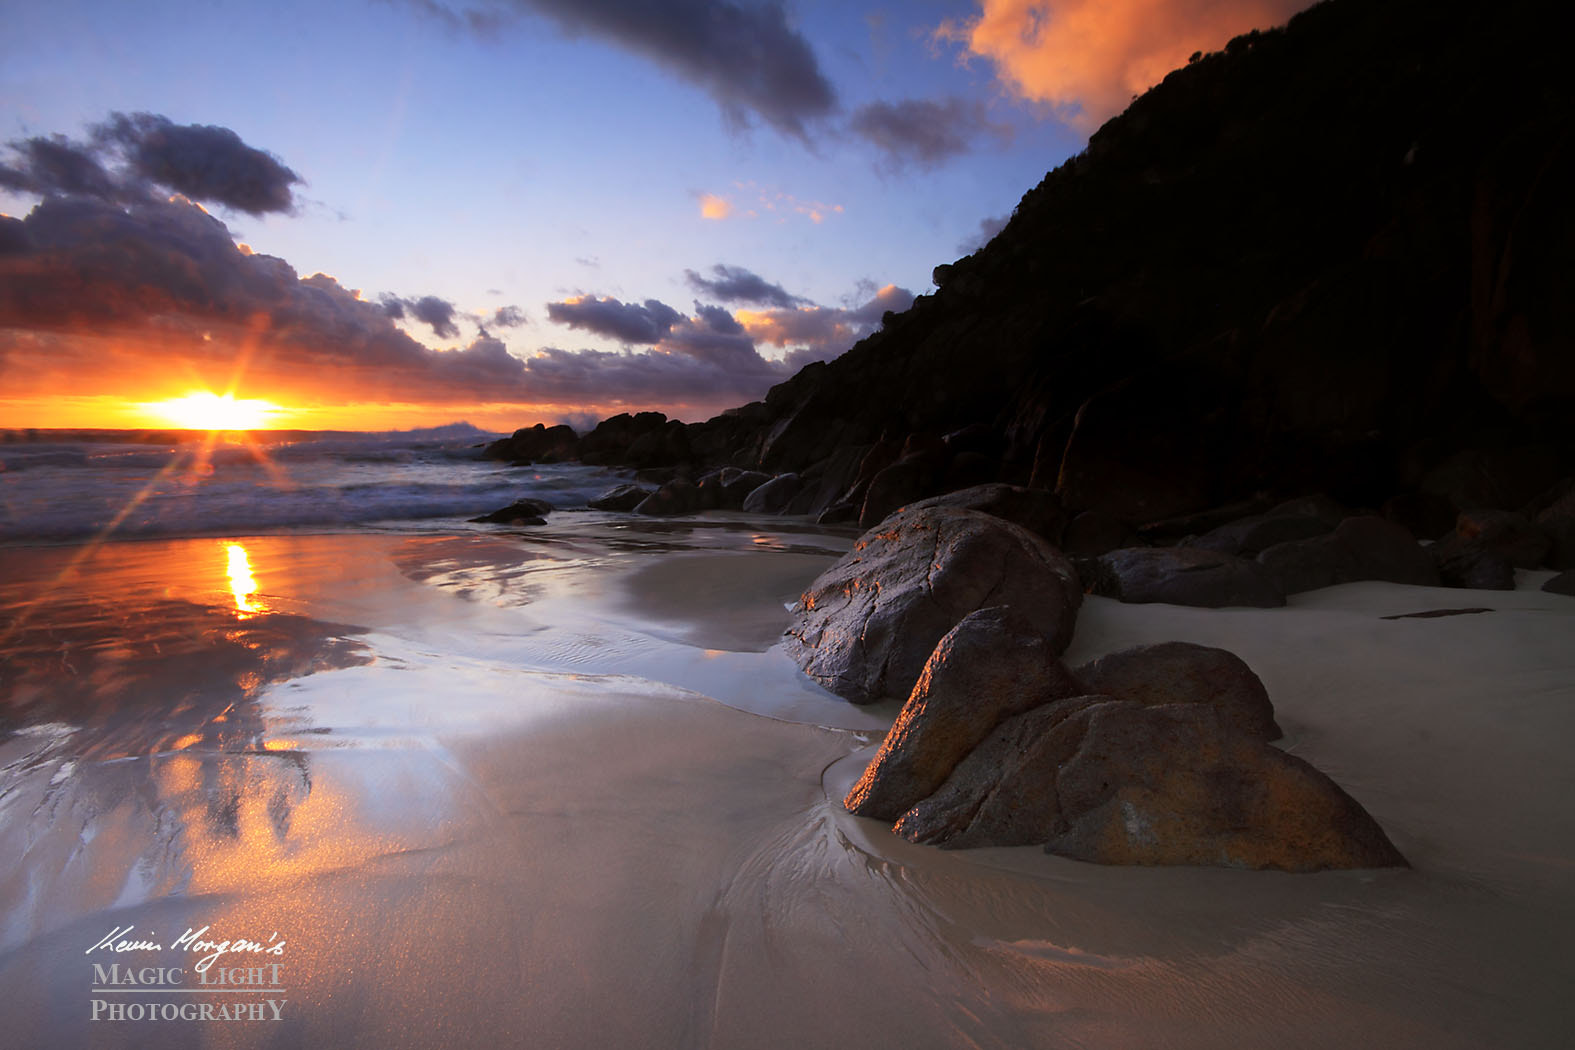 Photograph Zenith Beach Sunrise by Kevin Morgan on 500px